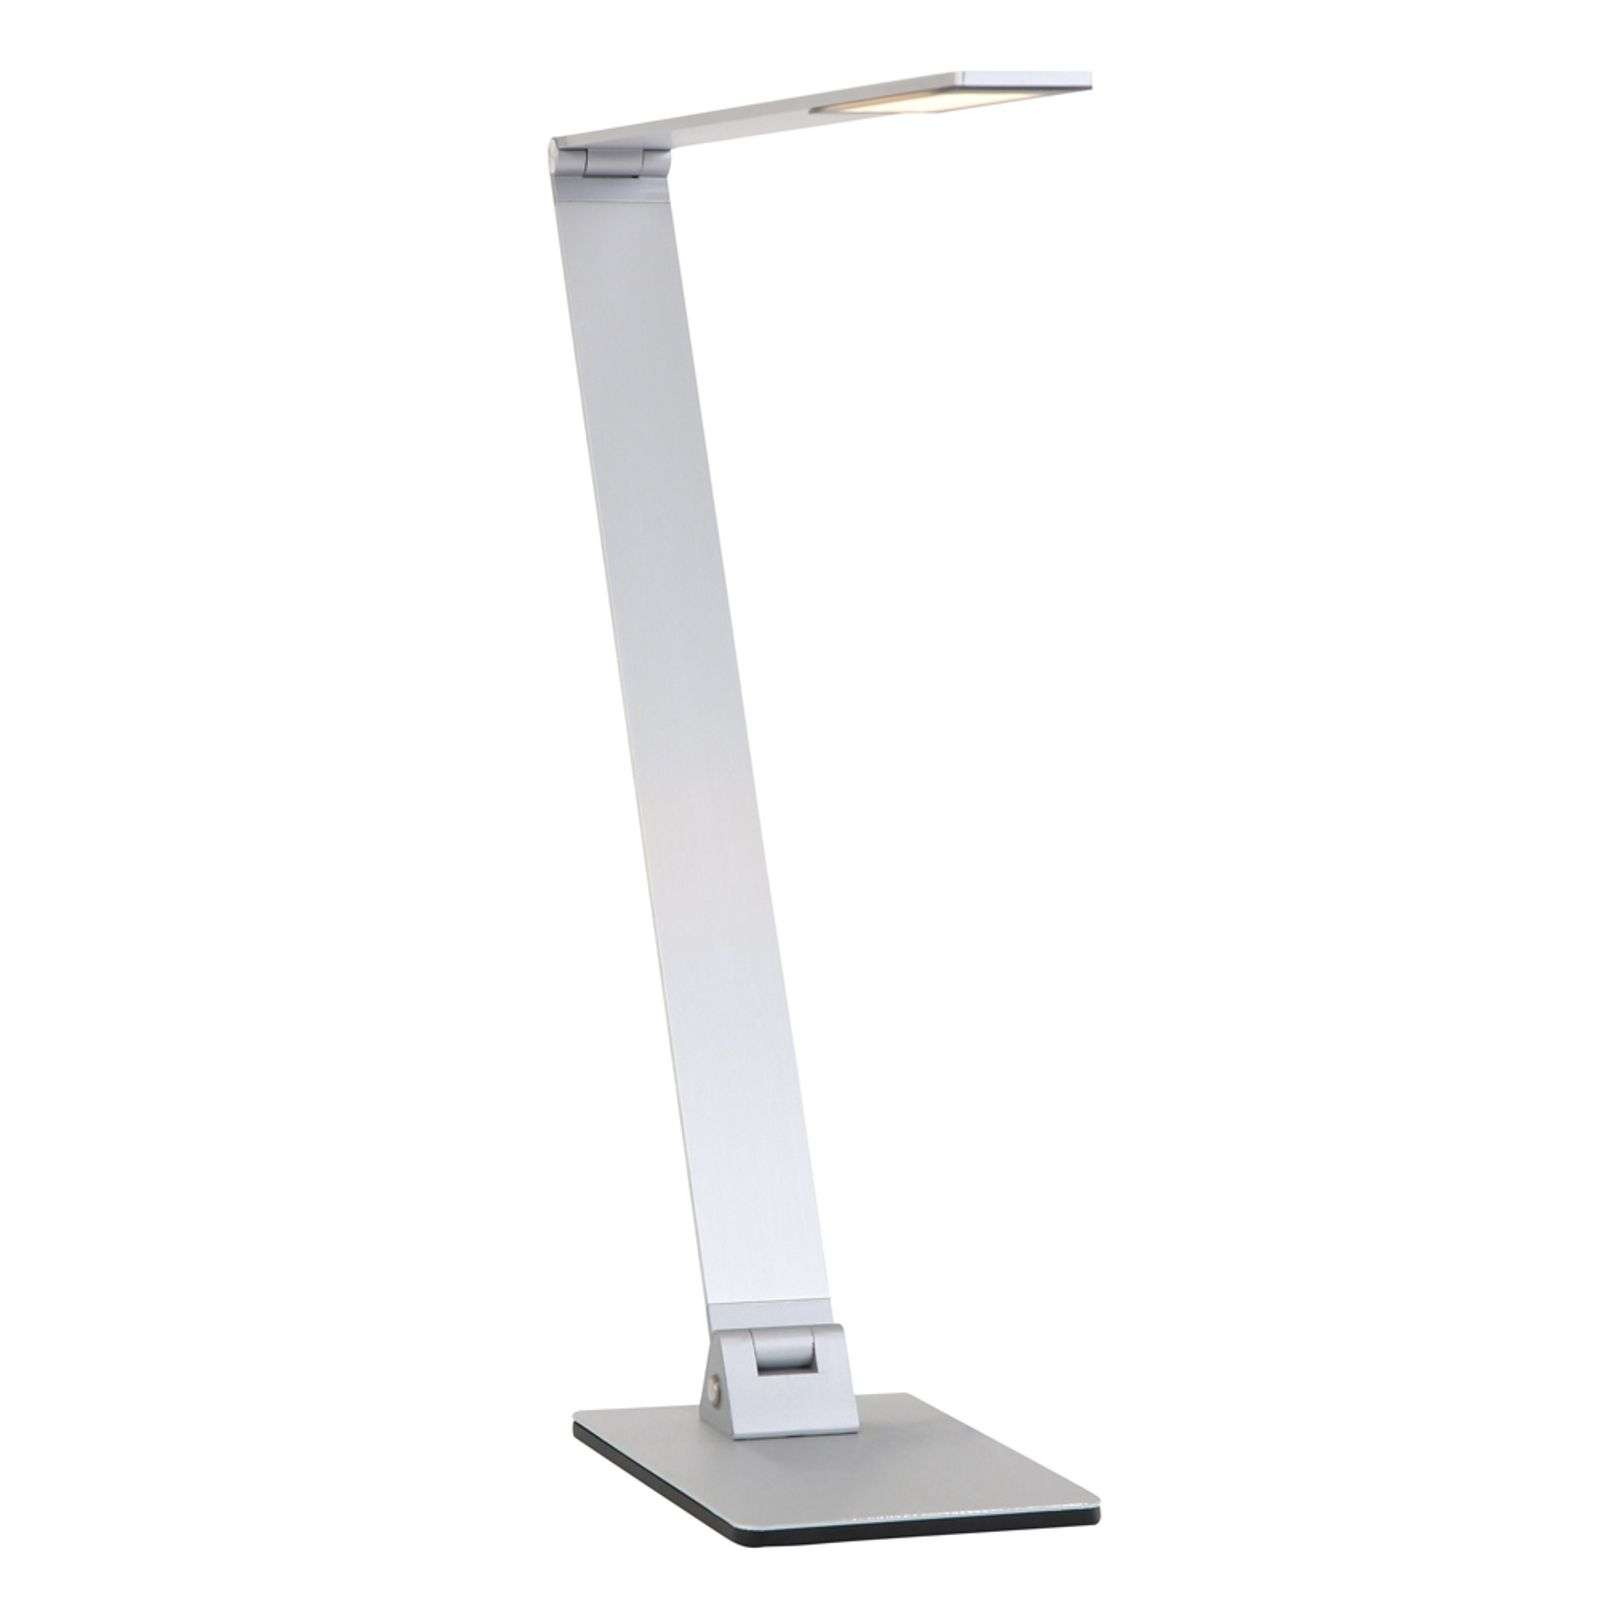 Lampe à poser LED Serenade dimmable acier